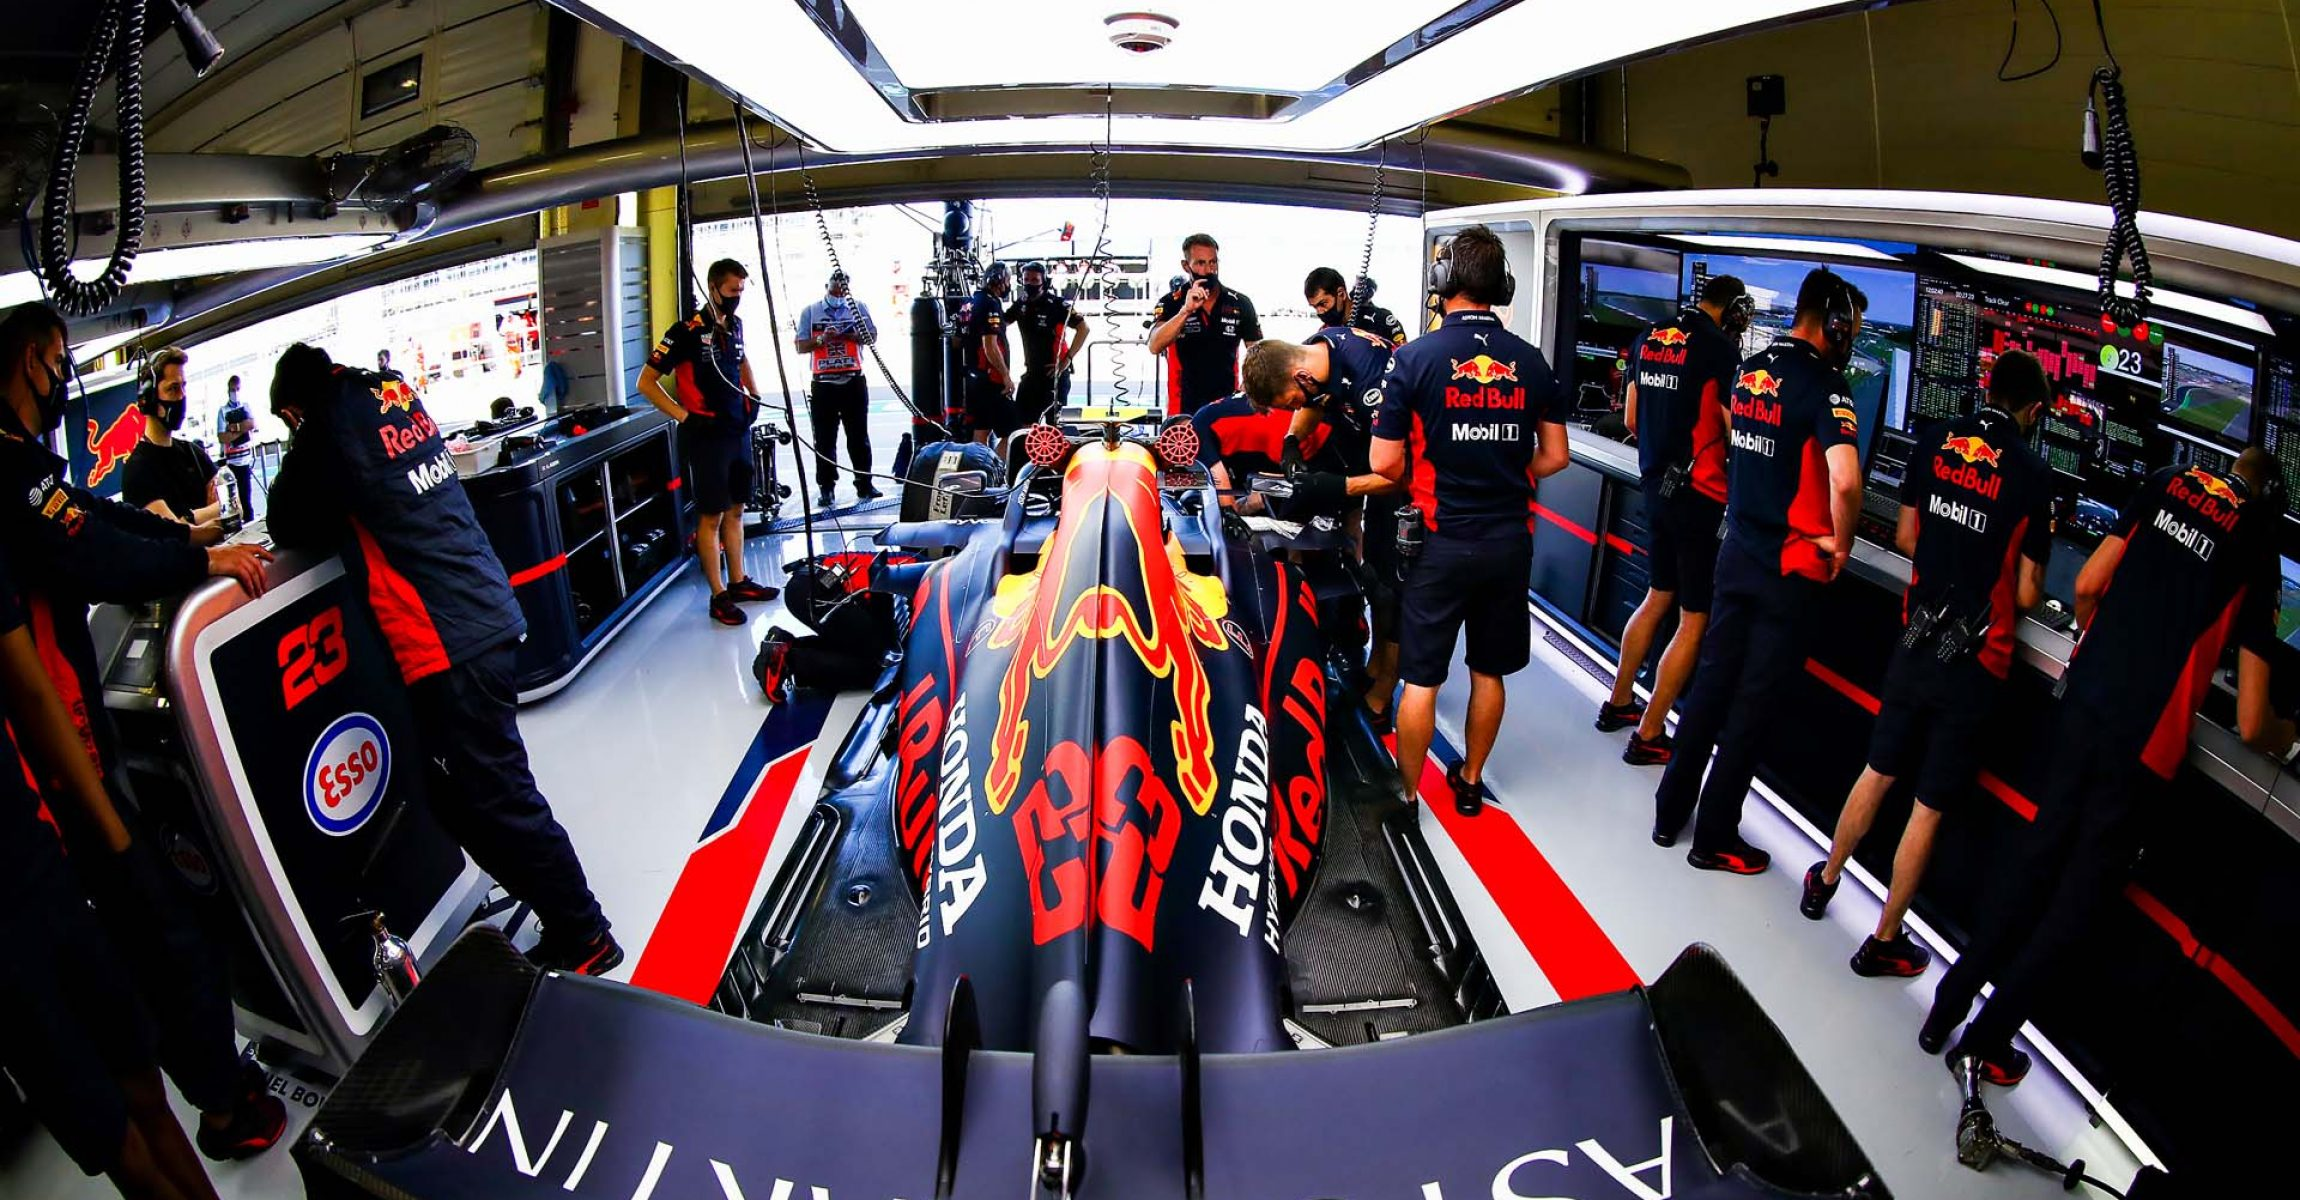 NORTHAMPTON, ENGLAND - AUGUST 07: A general view of the car of Alexander Albon of Thailand and Red Bull Racing in the garage during practice for the F1 70th Anniversary Grand Prix at Silverstone on August 07, 2020 in Northampton, England. (Photo by Mark Thompson/Getty Images,)